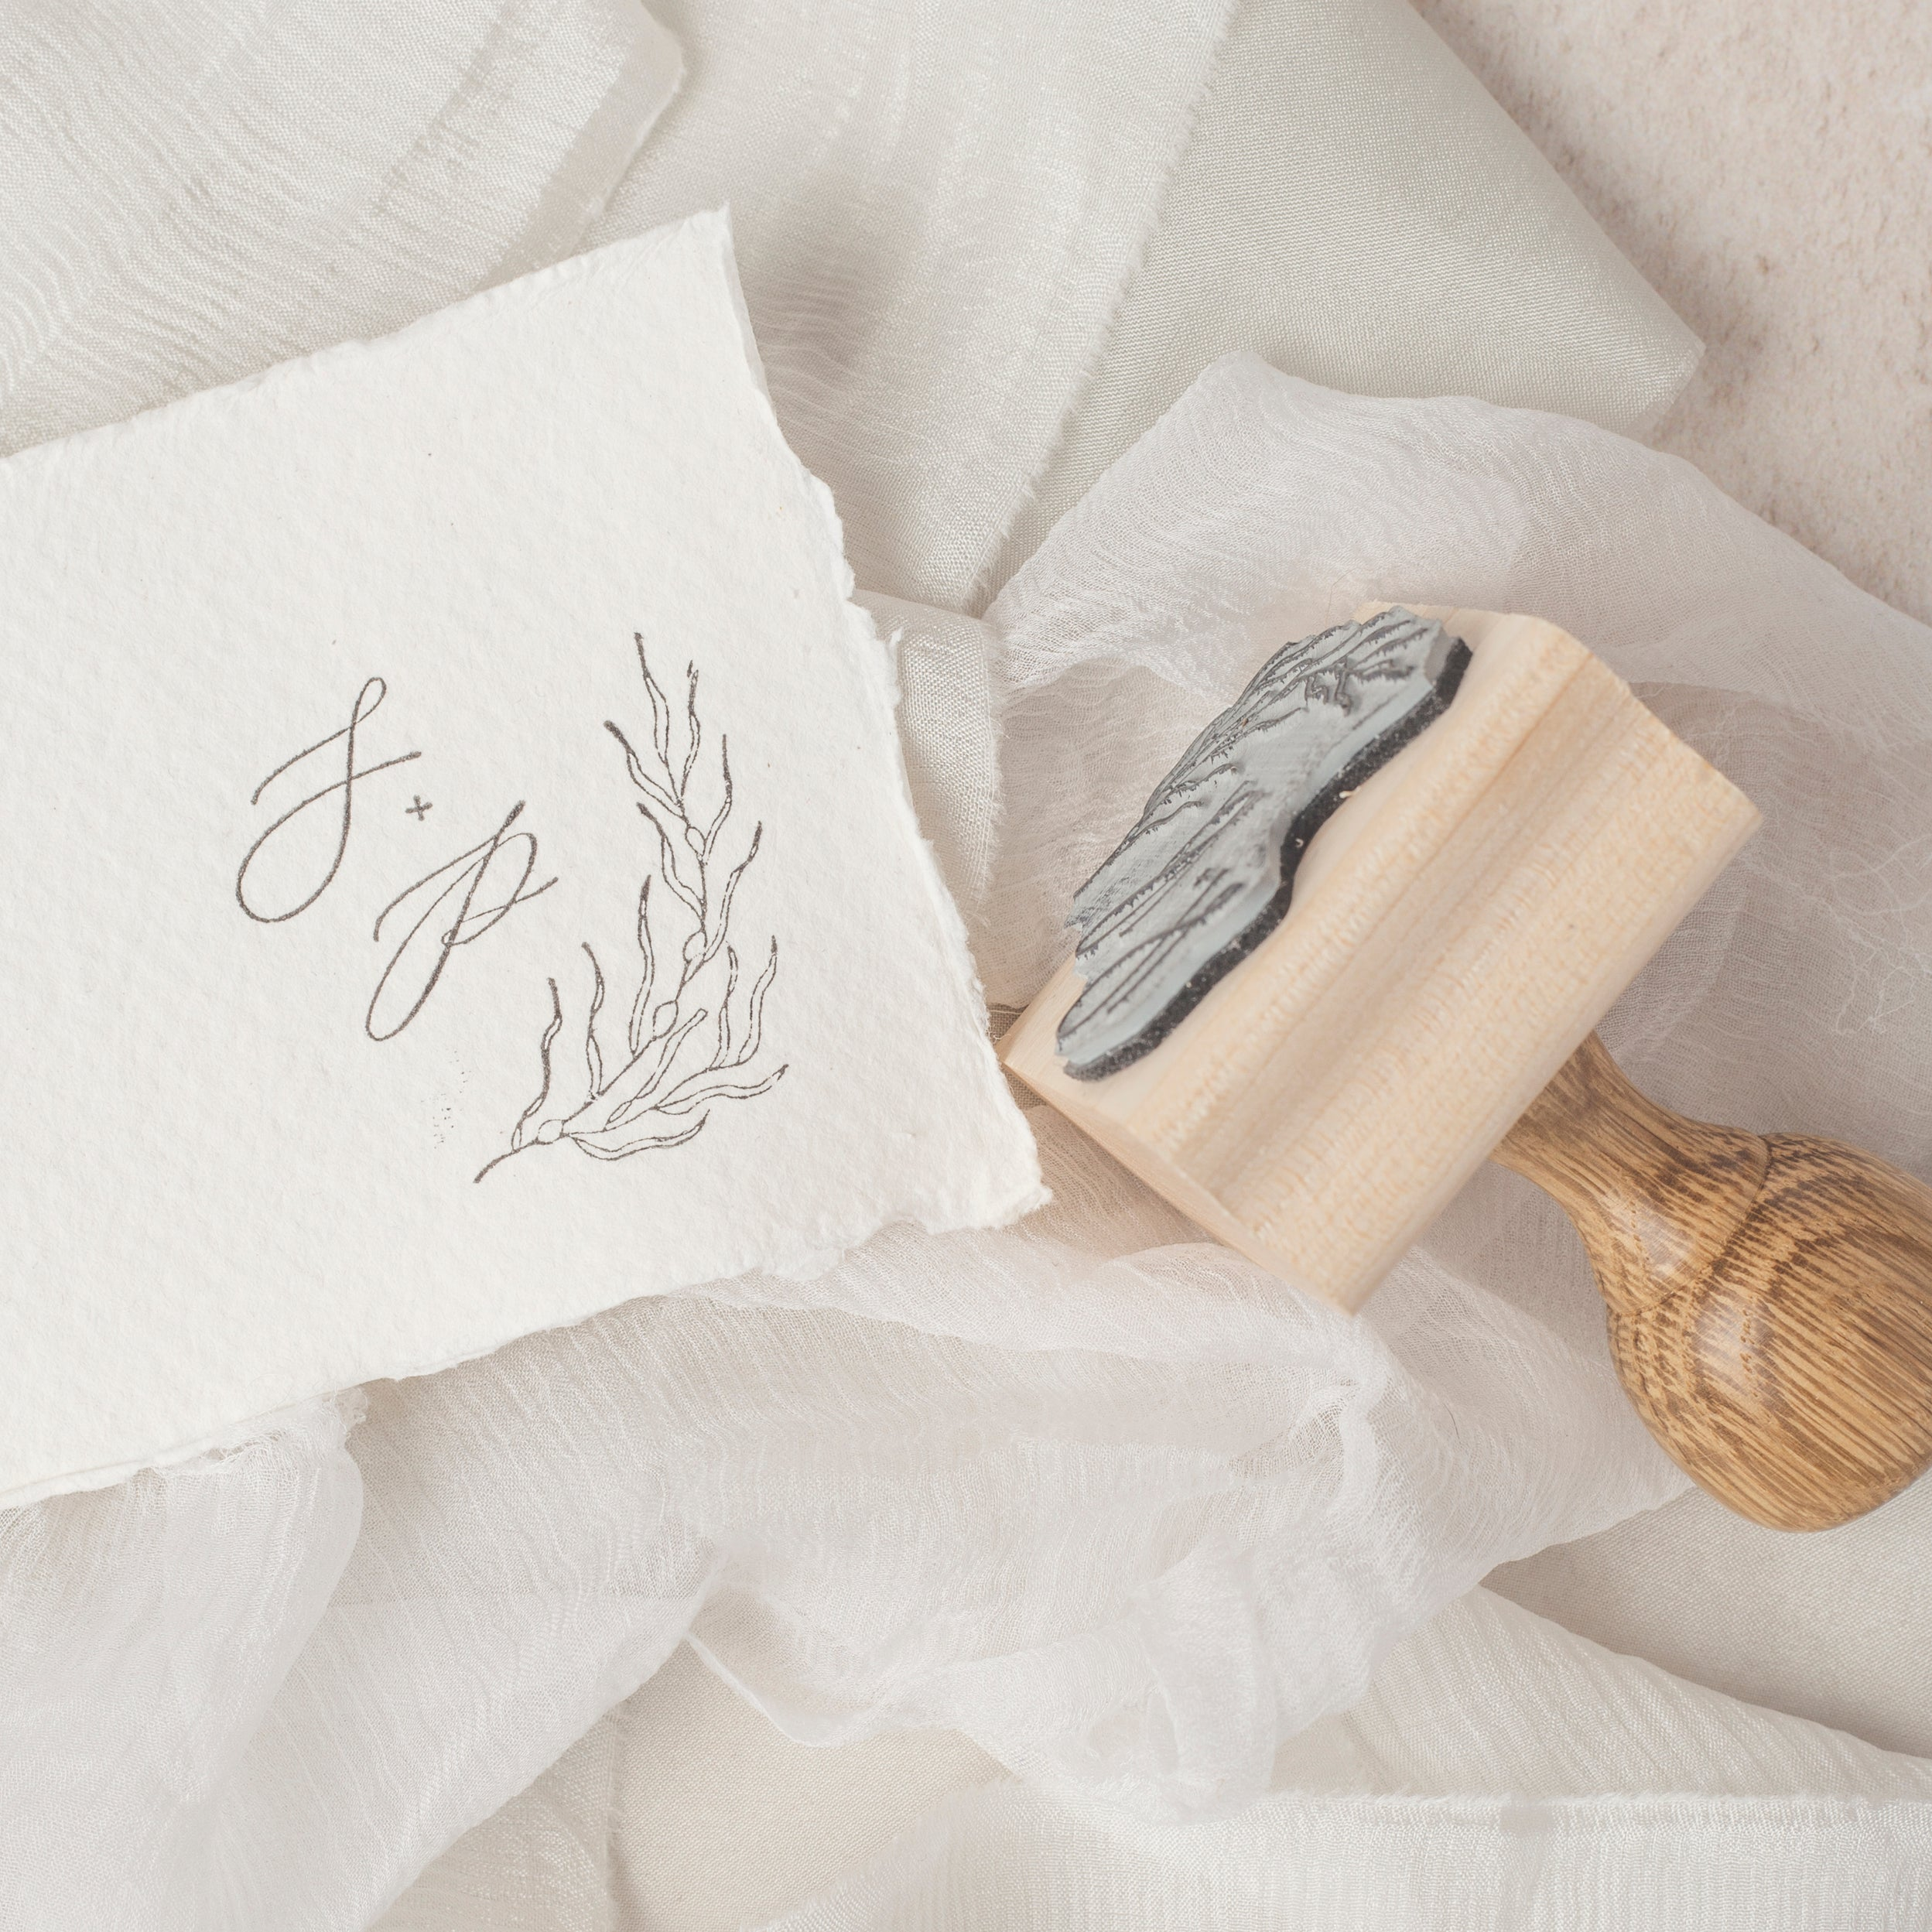 Sea Grass Calligraphy Script Botanical Seaweed Monogram Rubber Stamp | Coastal Beach Wedding Invitations | Heirloom Seals